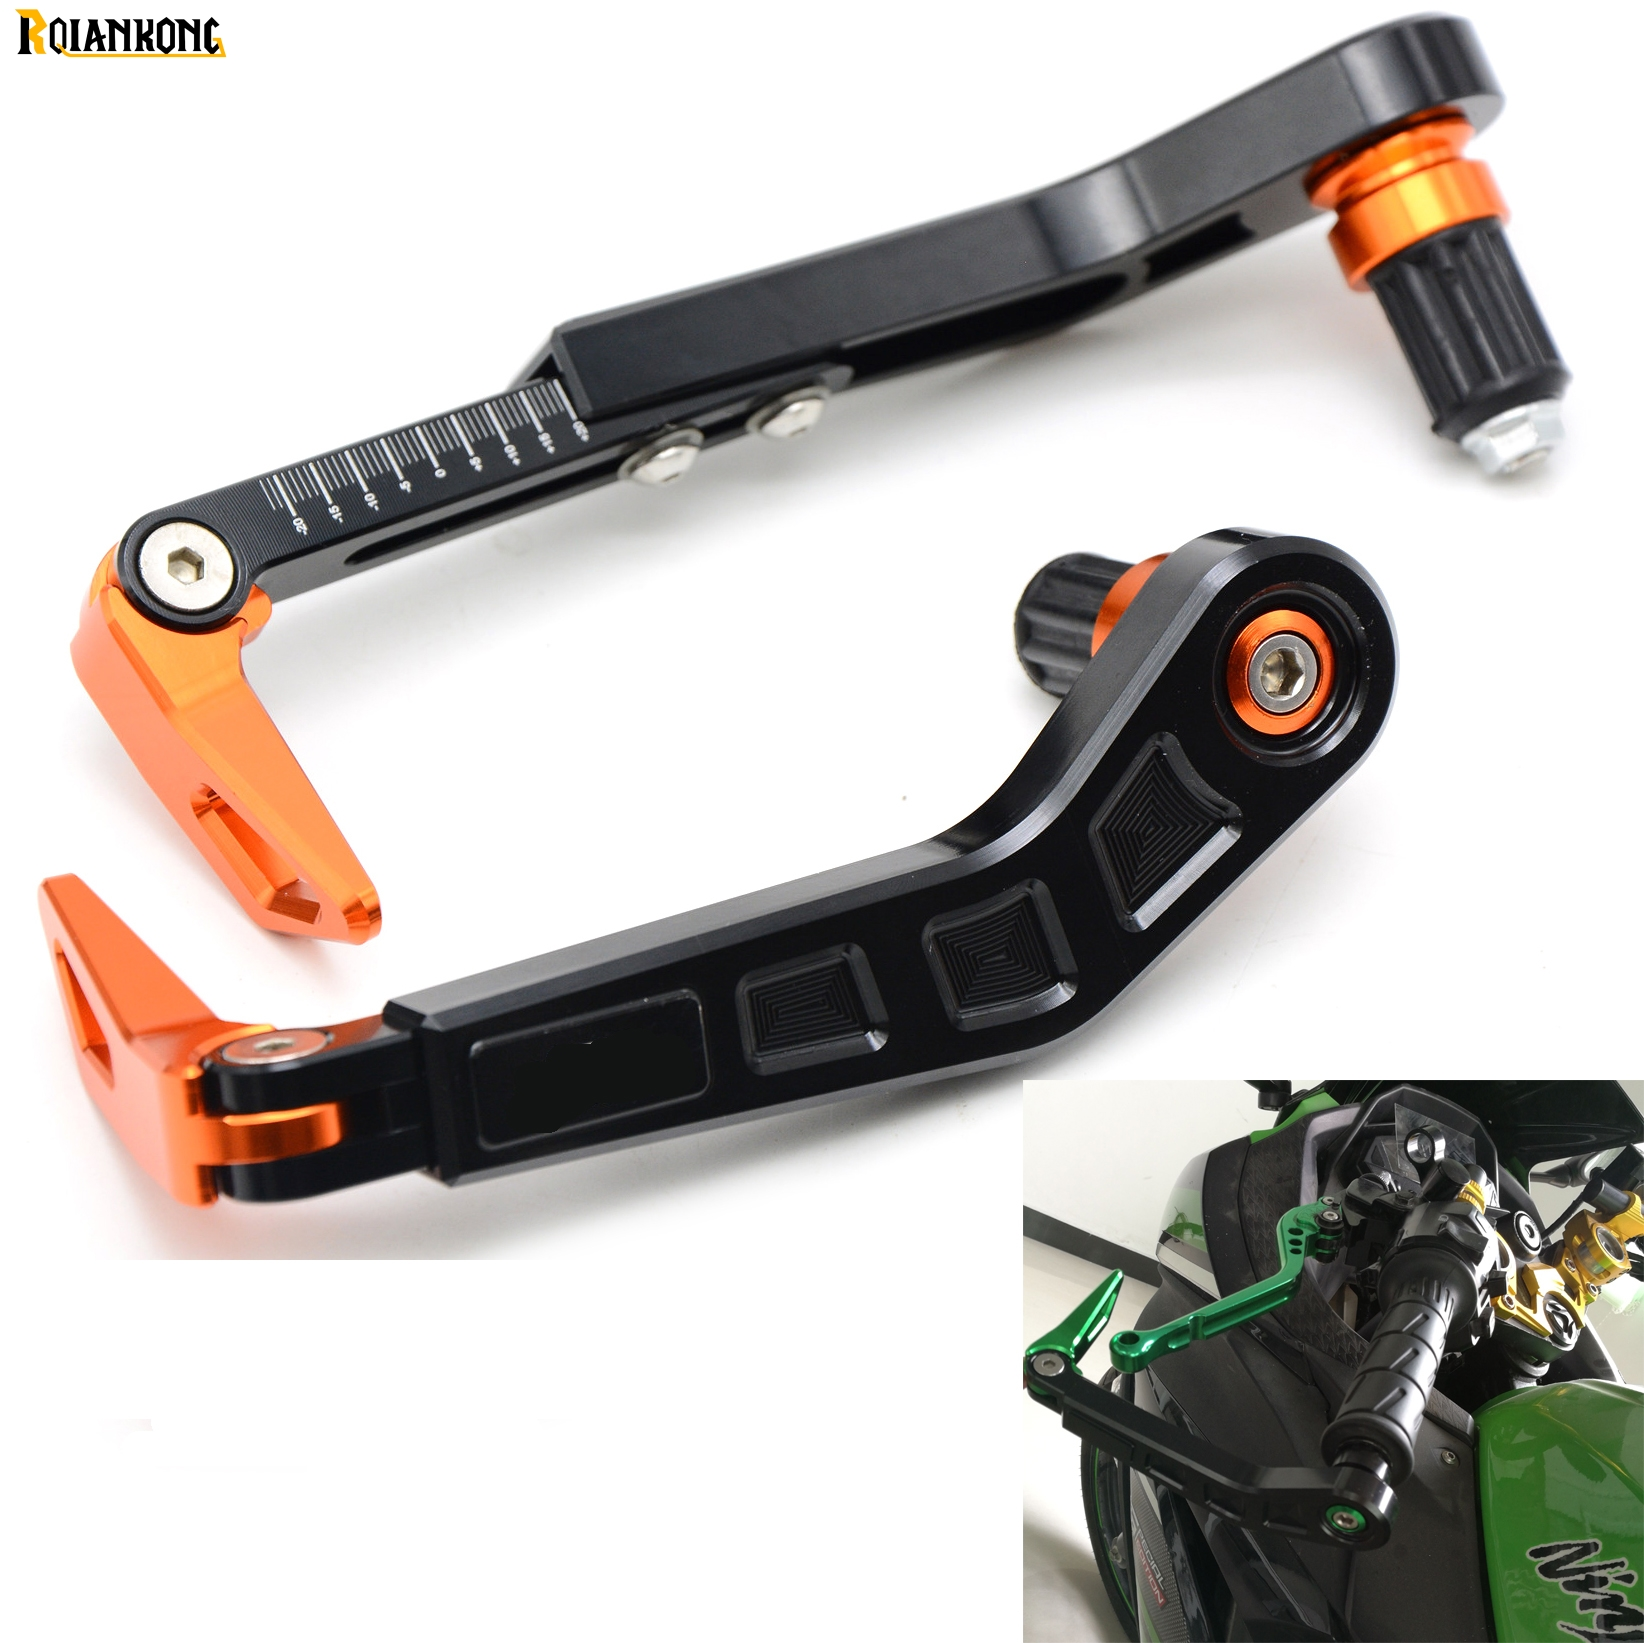 Universal 7/822mm Motorcycle Handlebar Brake Clutch Lever Protect Guard for KTM 200 250 390 690 990 Duke RC SMC/SMCR Enduro R cnc motorcycle billet rear brake pedal step tips pedal for ktm 690 smc supermotor enduro 690 duke 950 990 adv 125 200 390 duke